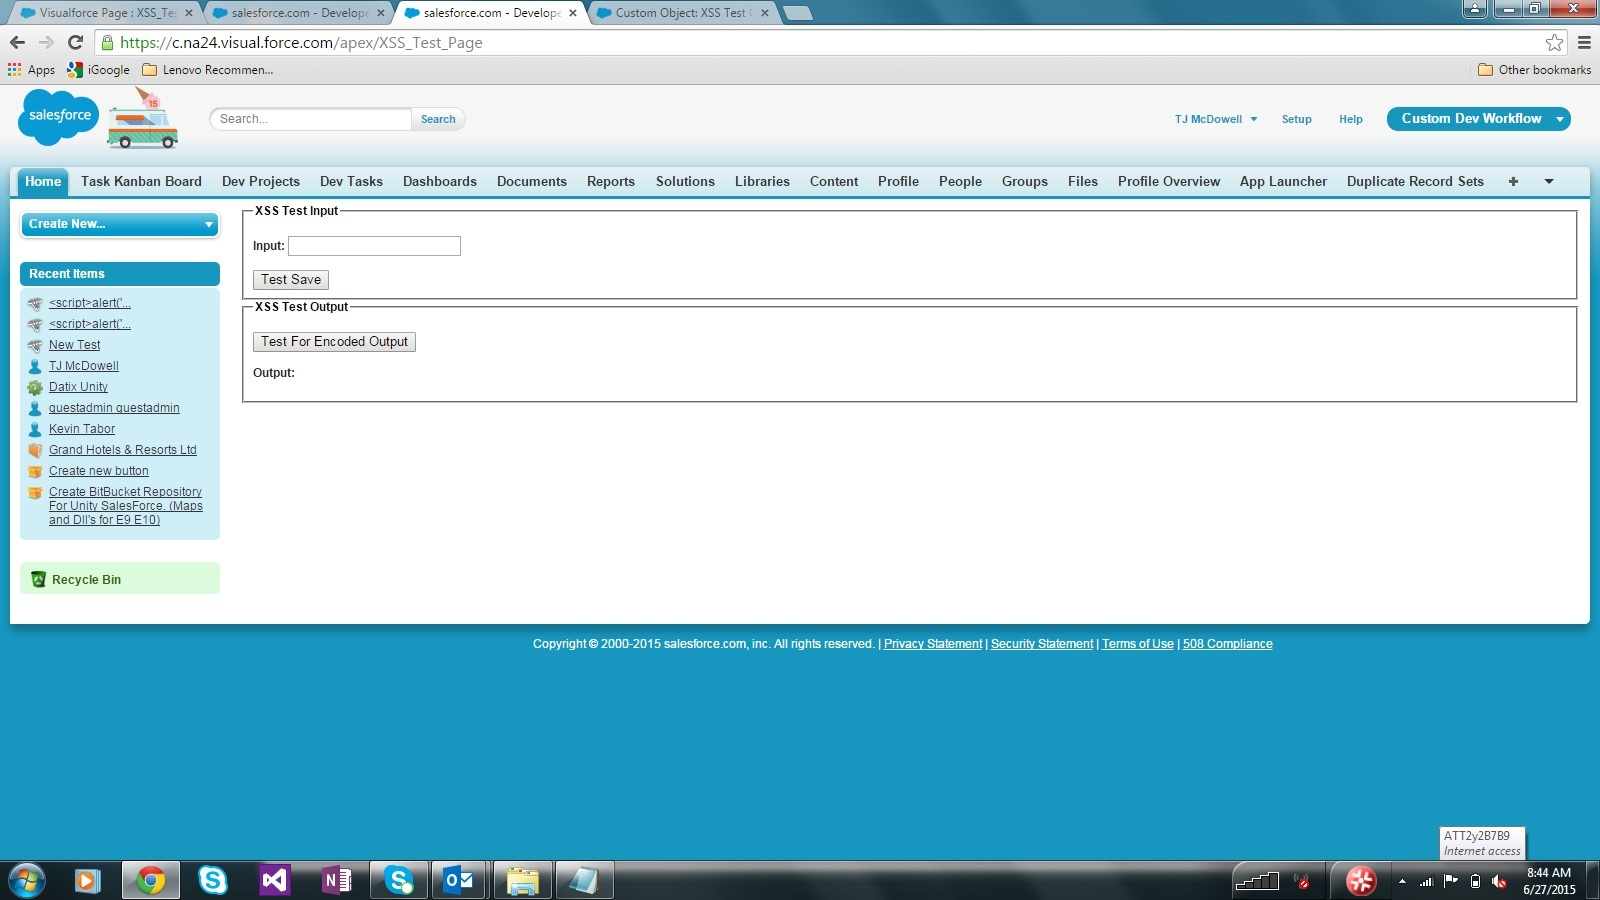 Visualforce XSS Test Page Empty